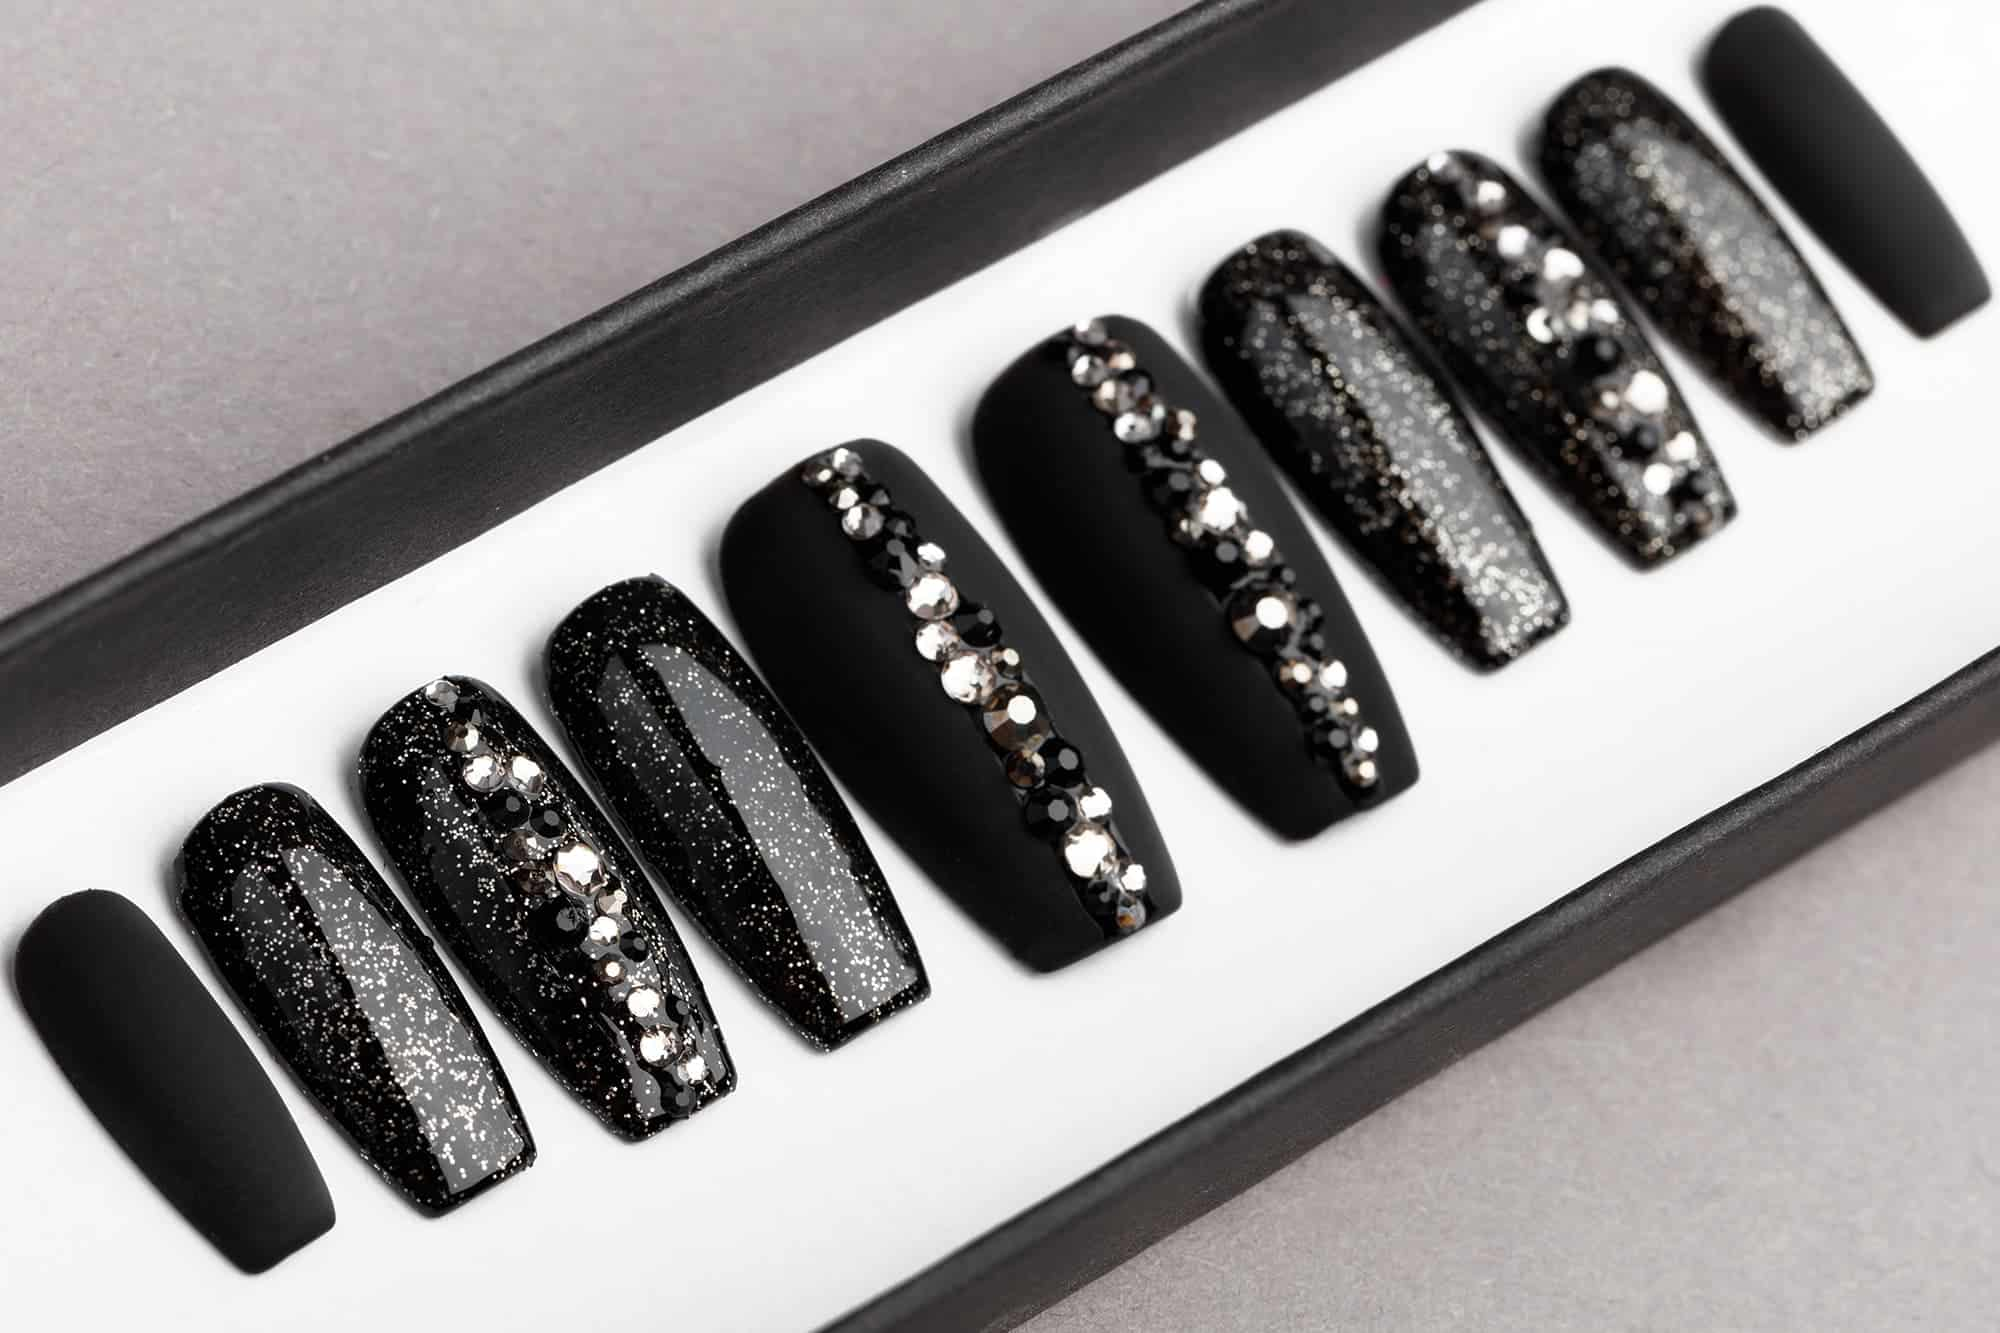 Black Abstract Press On Nails with Swarovski crystals ...